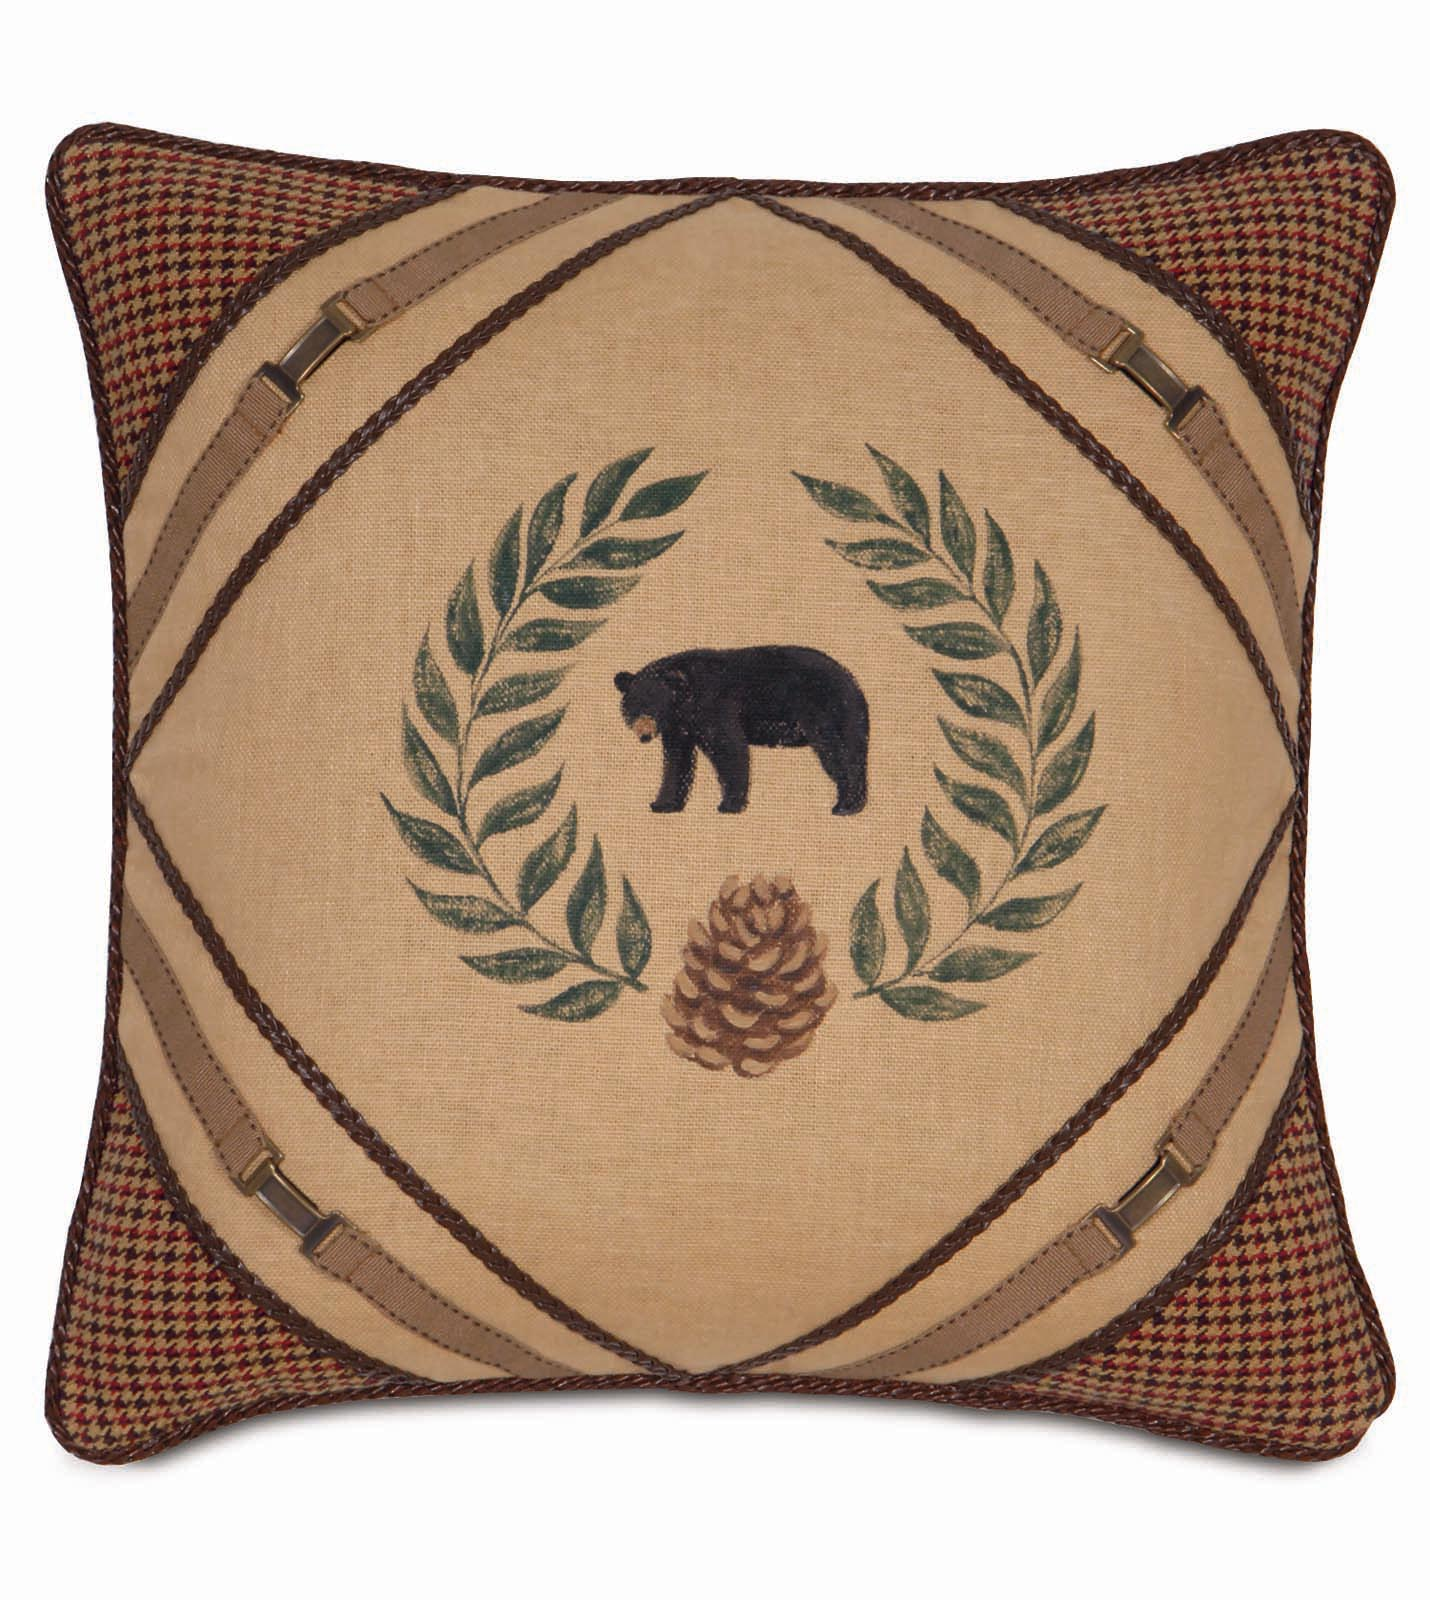 Studio 773 pillows by eastern accents hand painted bear for Hand painted pillows